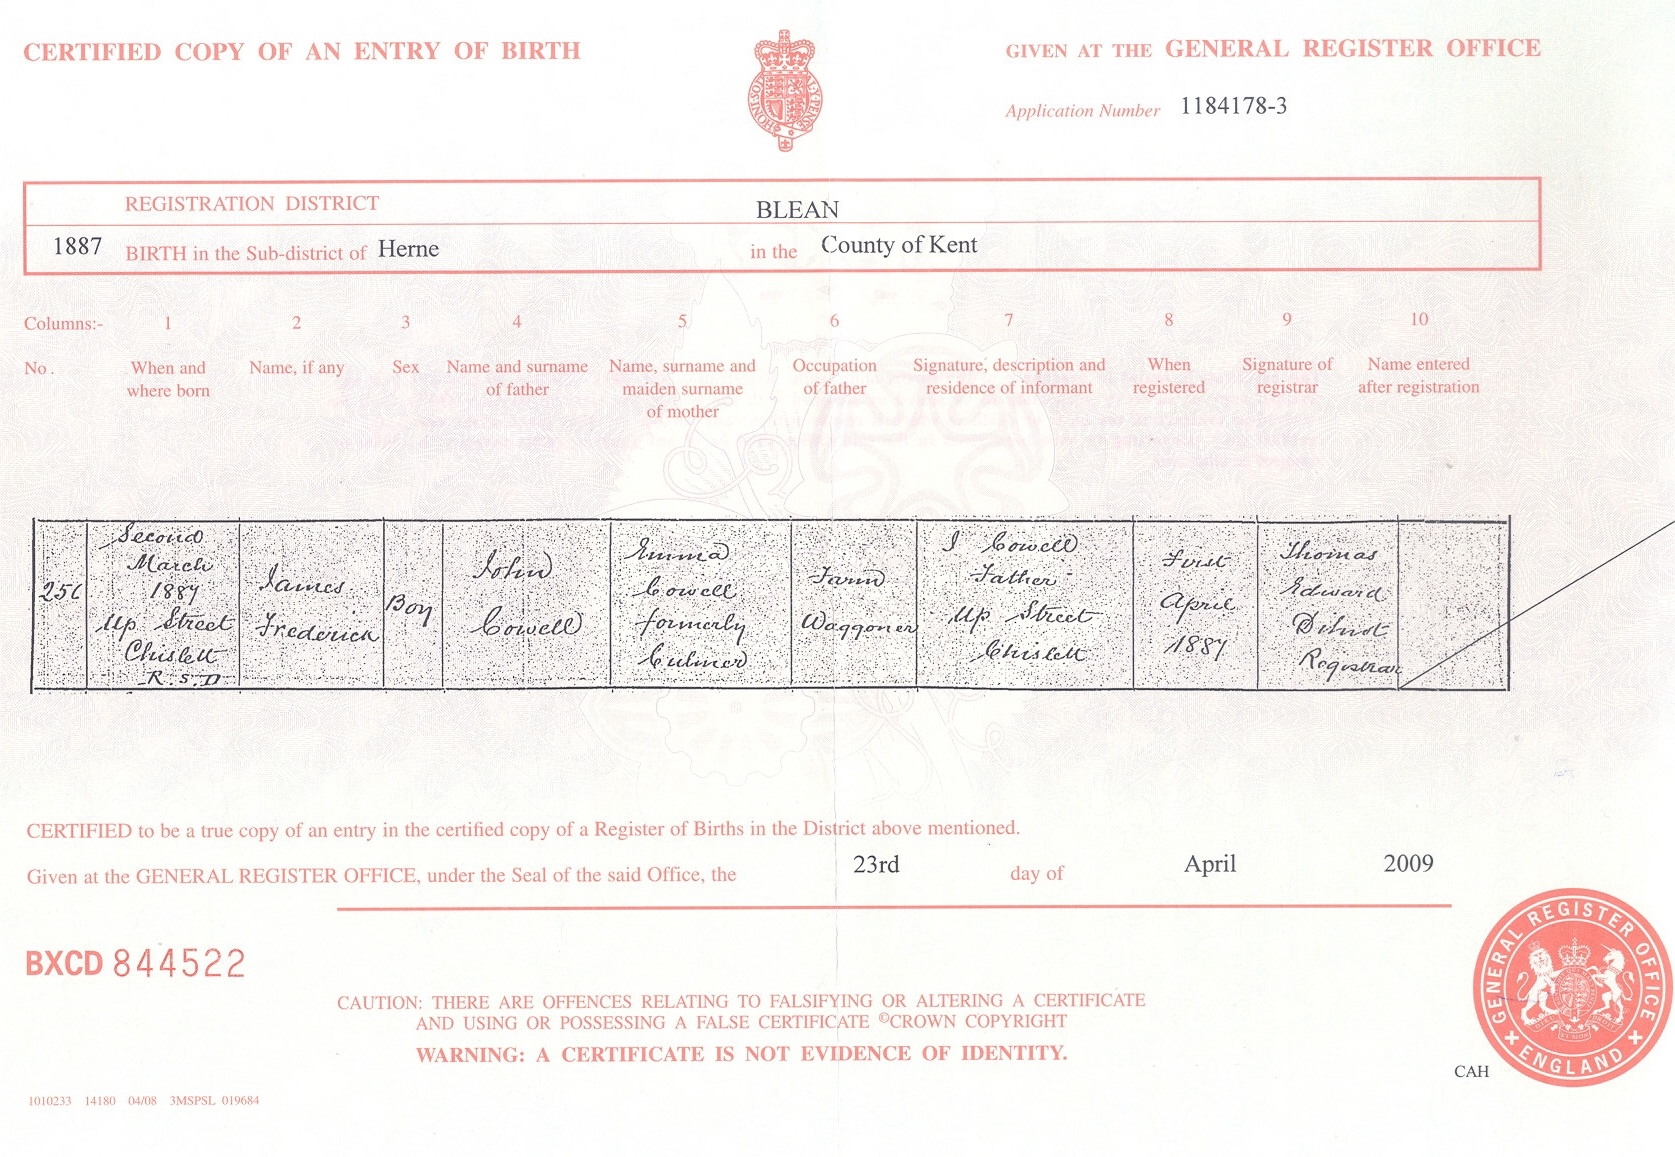 James Cowell - birth certificate